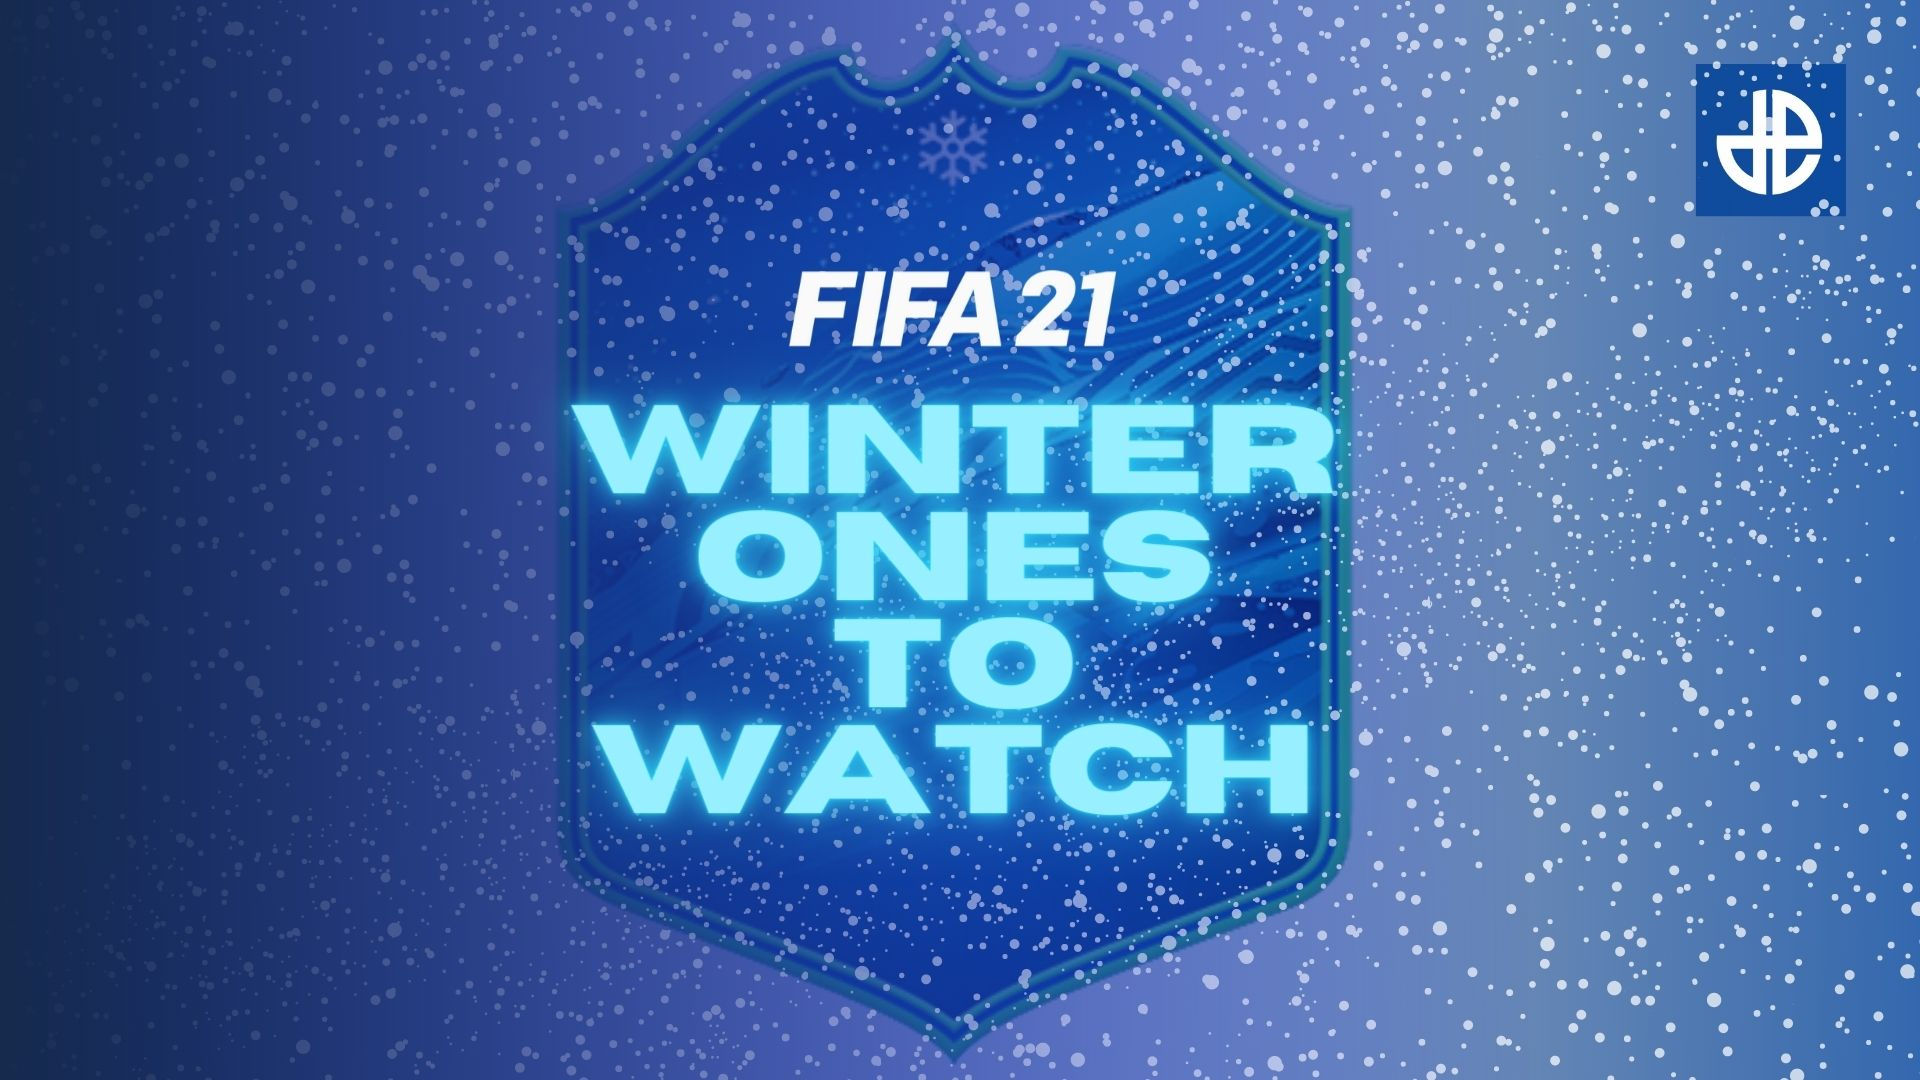 FIFA 21 Ones to Watch predictions